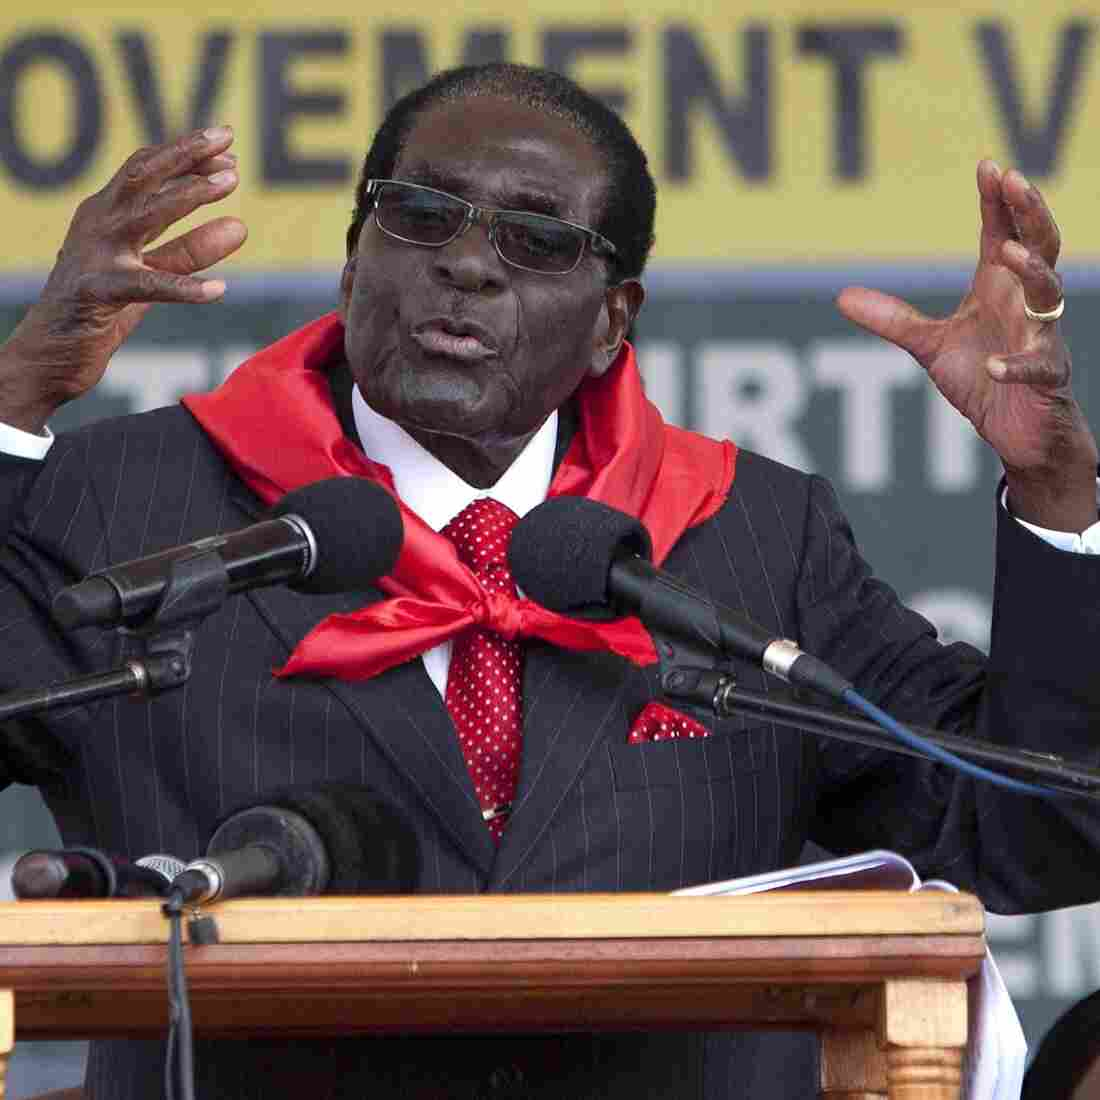 Why Did Robert Mugabe Ban Goats From A City Where There Are No Goats?